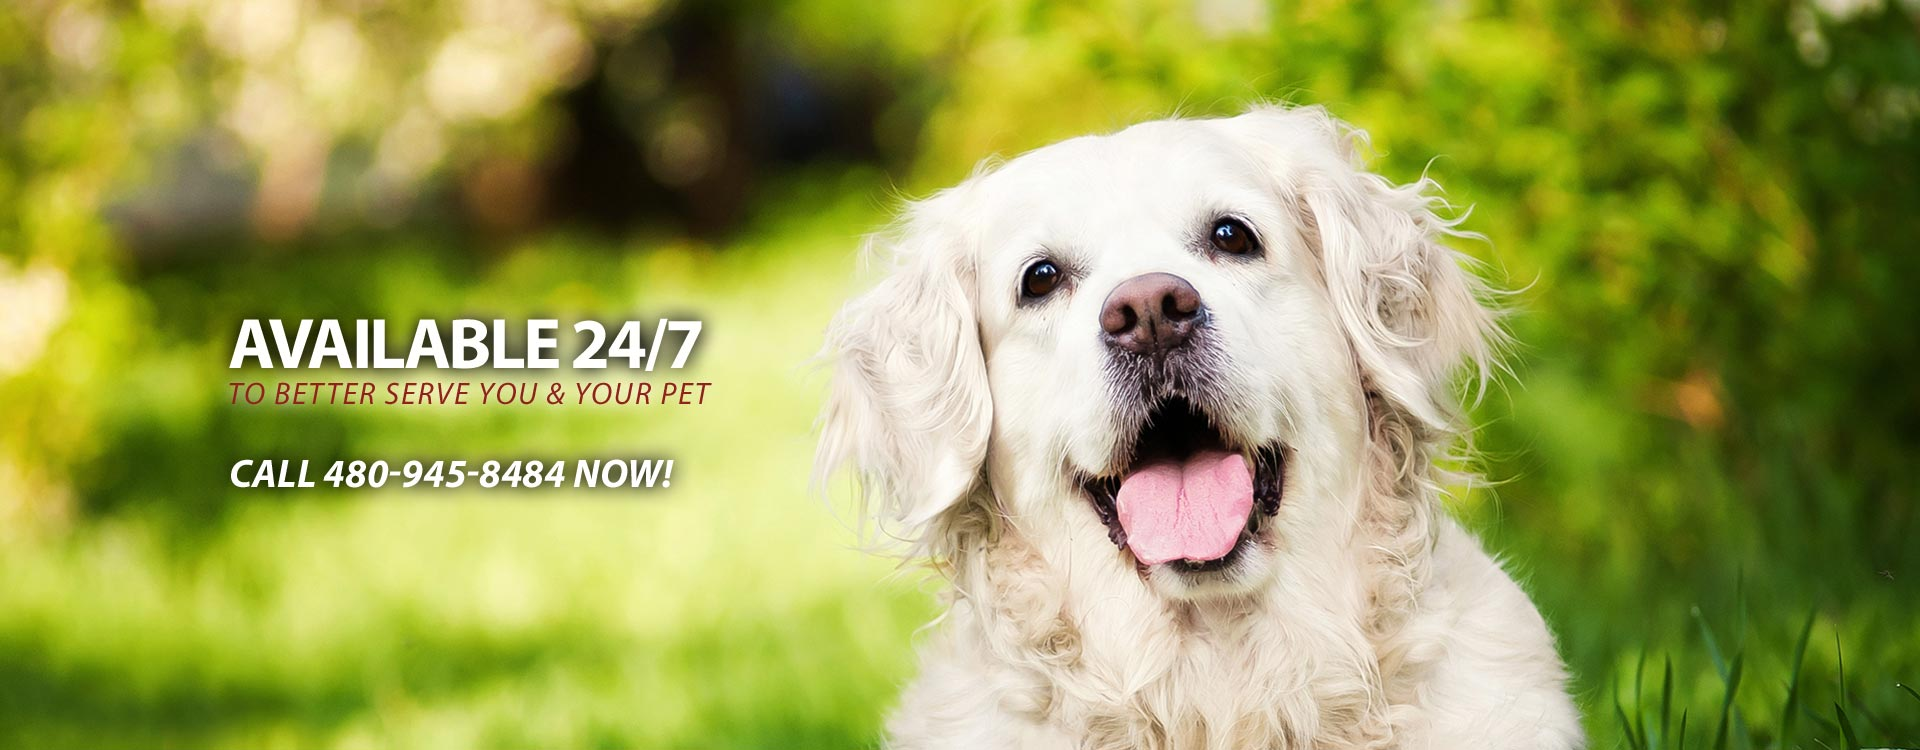 24 Hour Cave Creek Veterinary Service